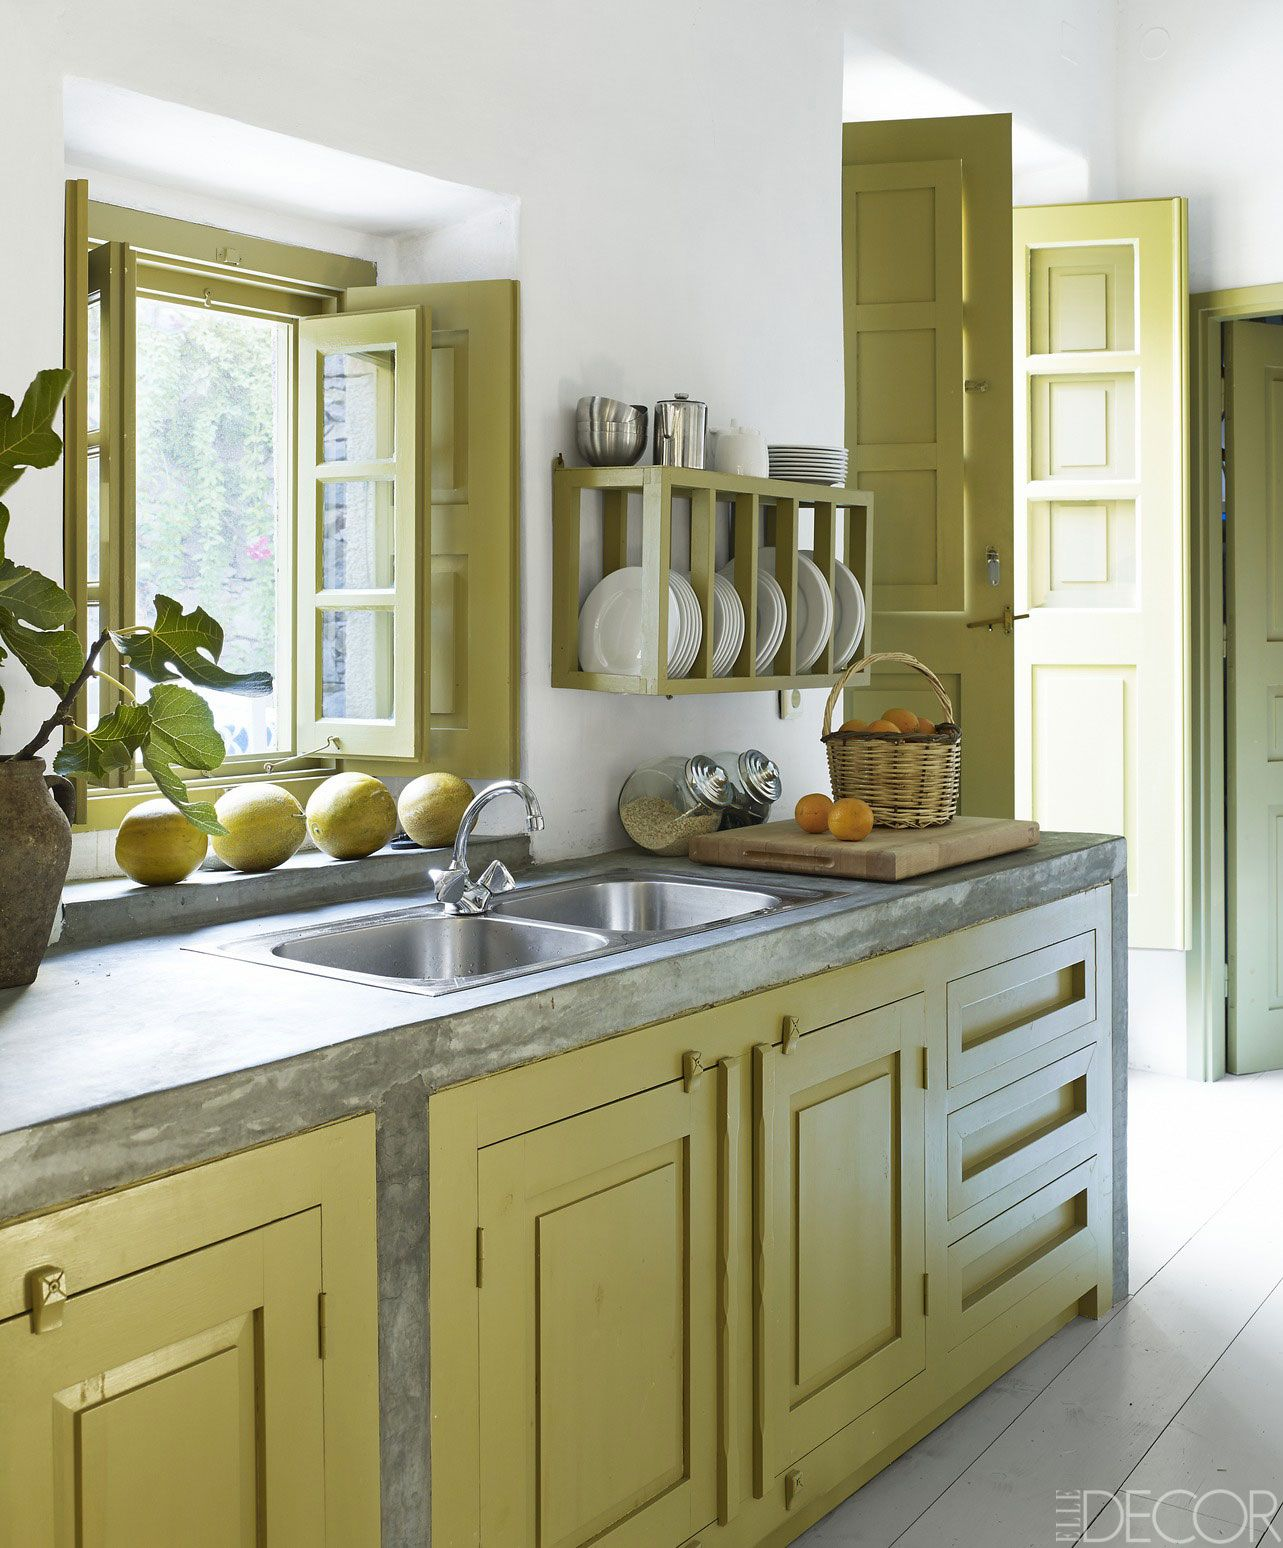 Decorating Kitchen Ideas 55 Small Kitchen Design Ideas  Decorating Tiny Kitchens